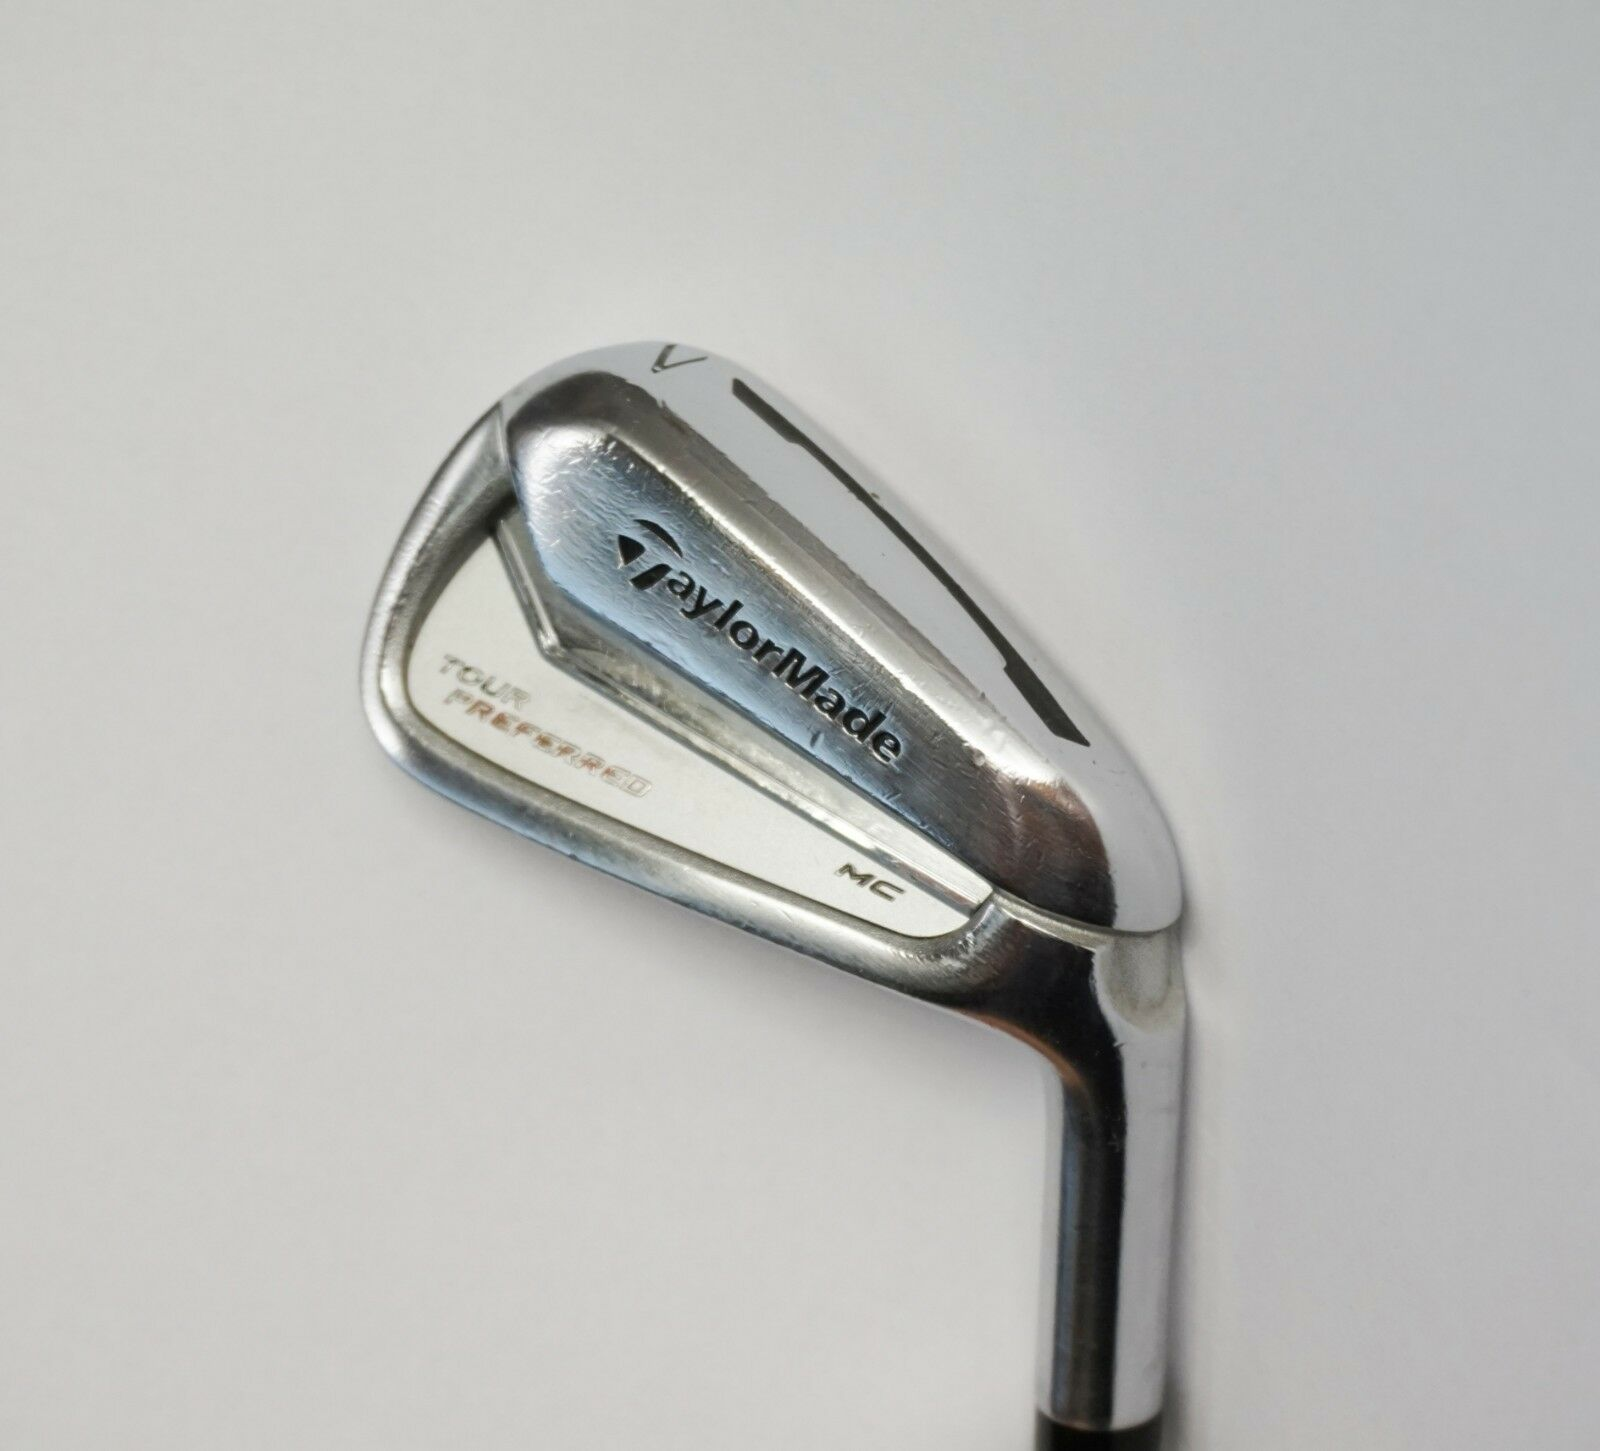 TaylorMade Tour Preferred MC 7 Iron C-Taper 125 Stiff Steel Shaft Lamkin Grip